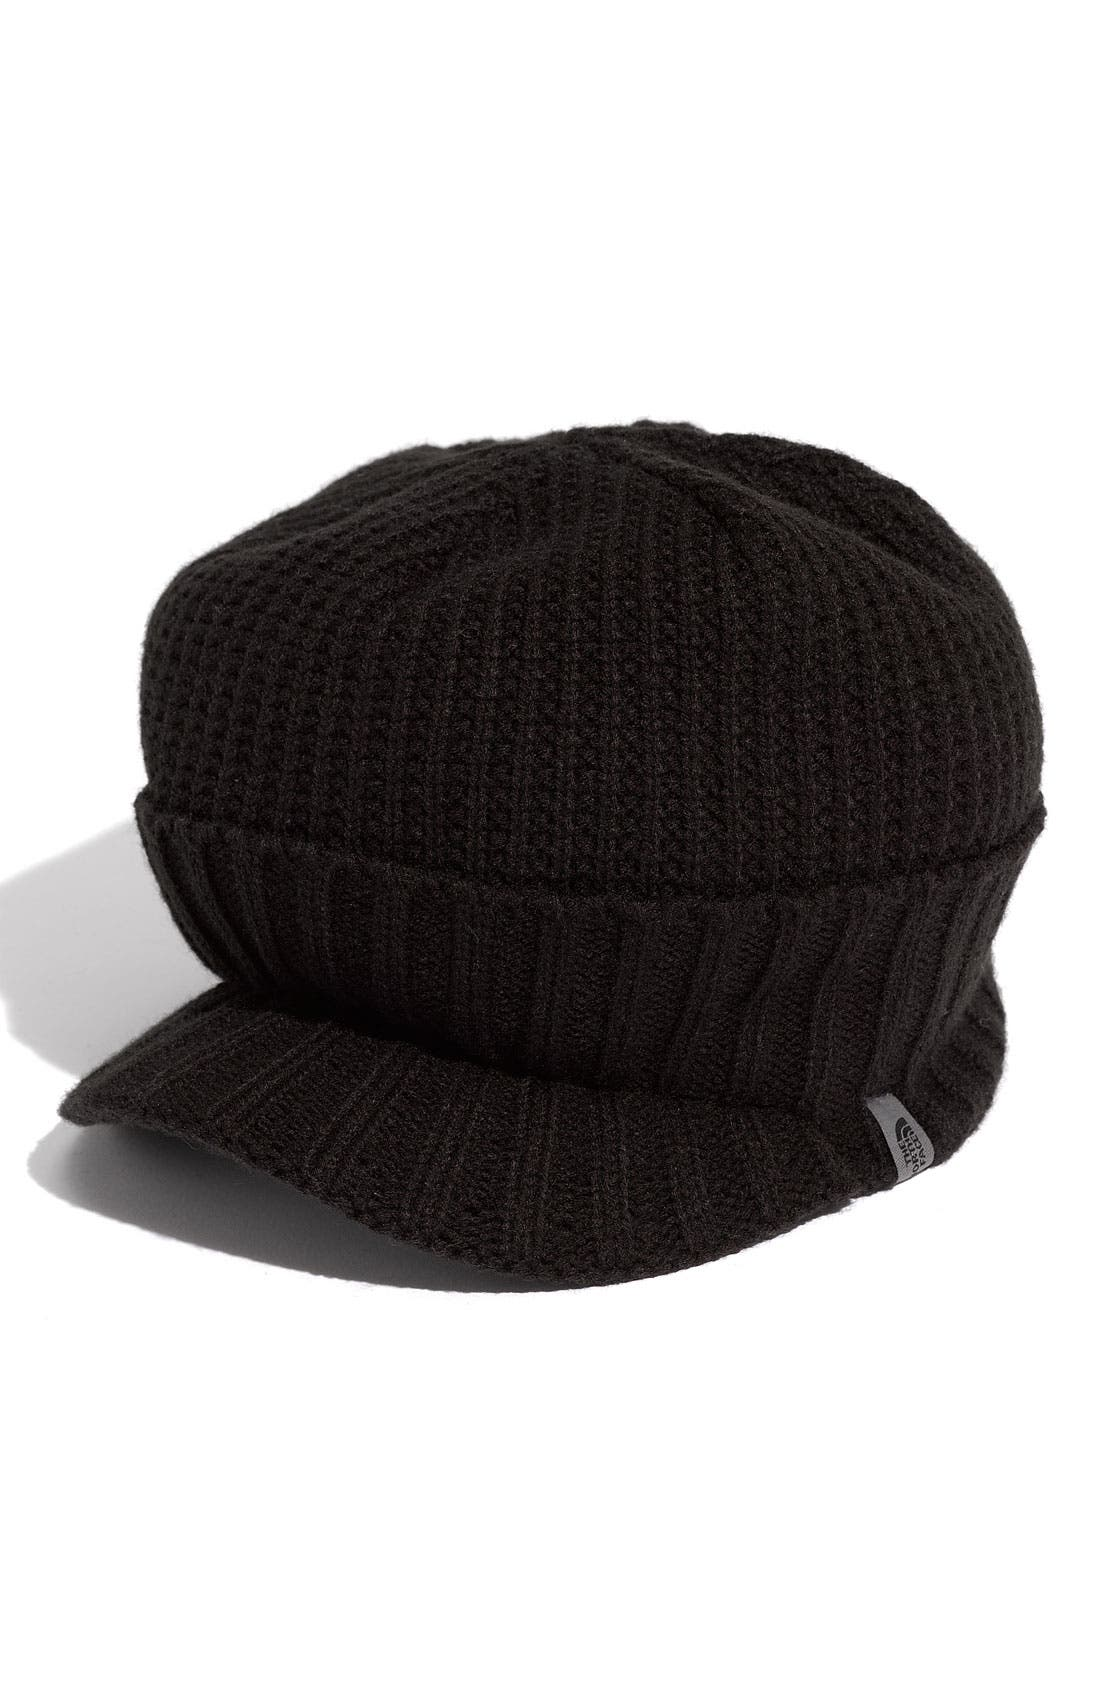 Alternate Image 2  - The North Face 'GTO' Rib Knit Visor Beanie (Men)